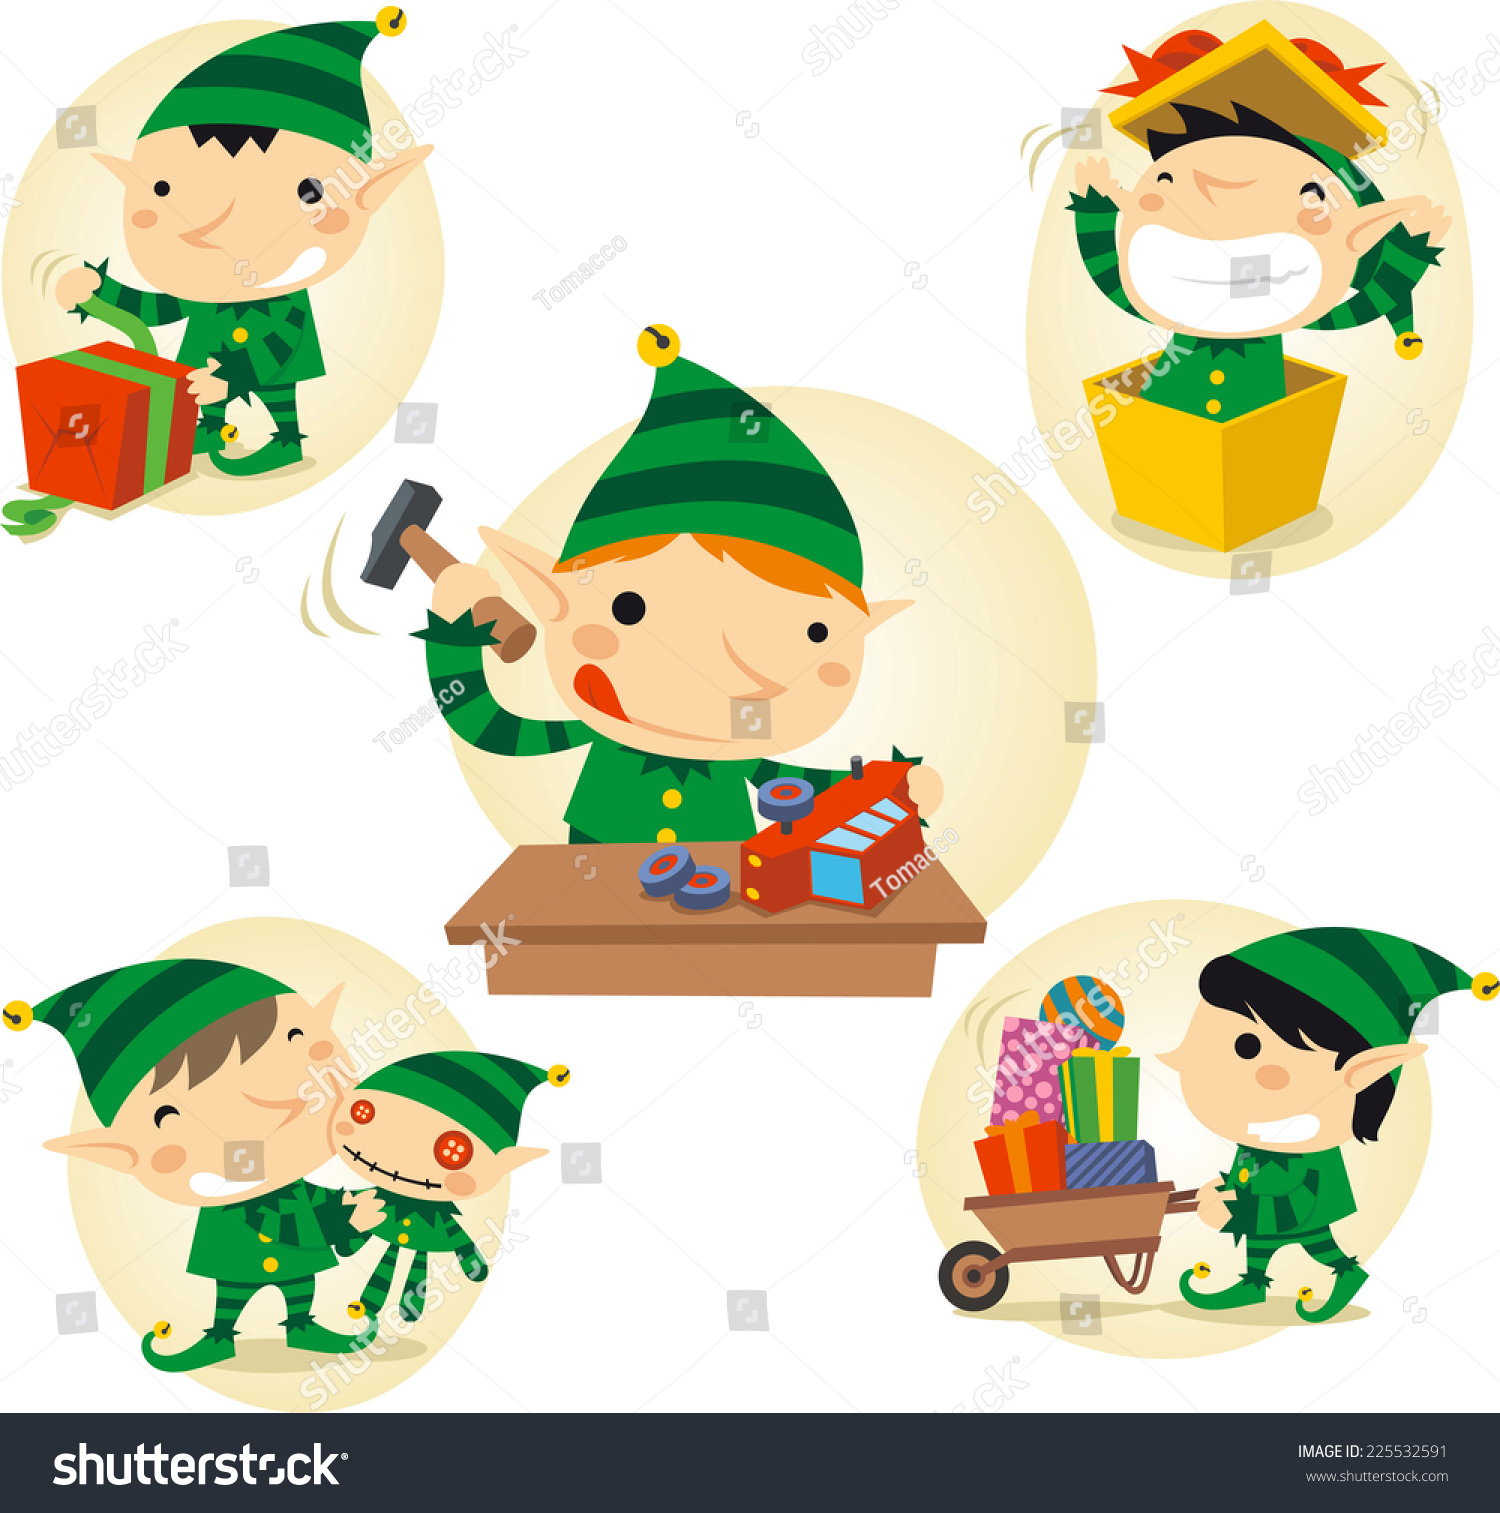 Elves Action Scenes Vector Cartoon Illustration Stock Vector ...